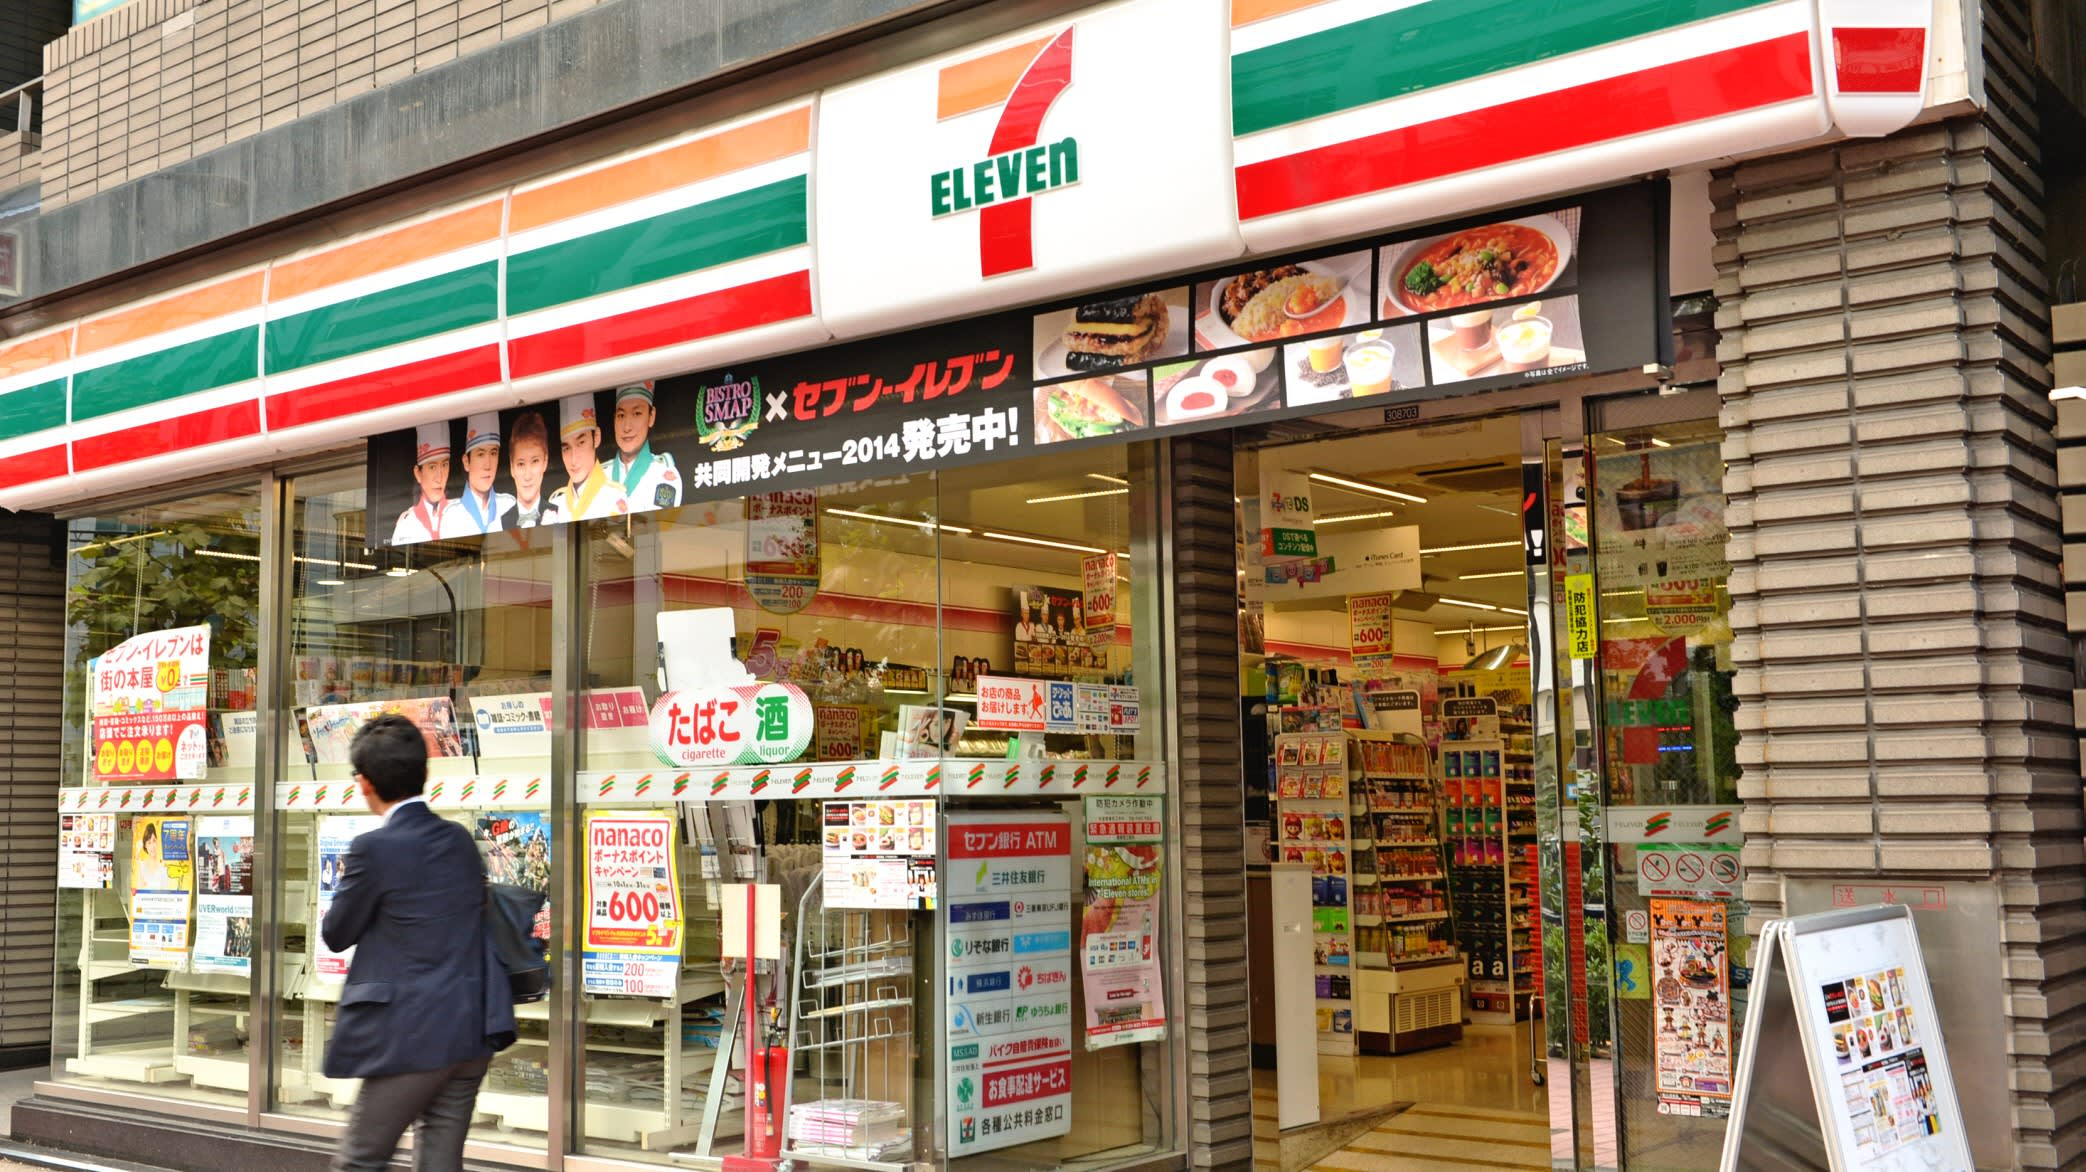 japan 7 eleven promotion 7-eleven has evolved from a lone texas ice house to a global chain of more than 48,000 stores that serve up slurpees, hot coffee, big gulps, snack foods, and fuel to hungry commuters, road trippers, and folks who need to pick up a few items on the way home from work or on the way to a party.